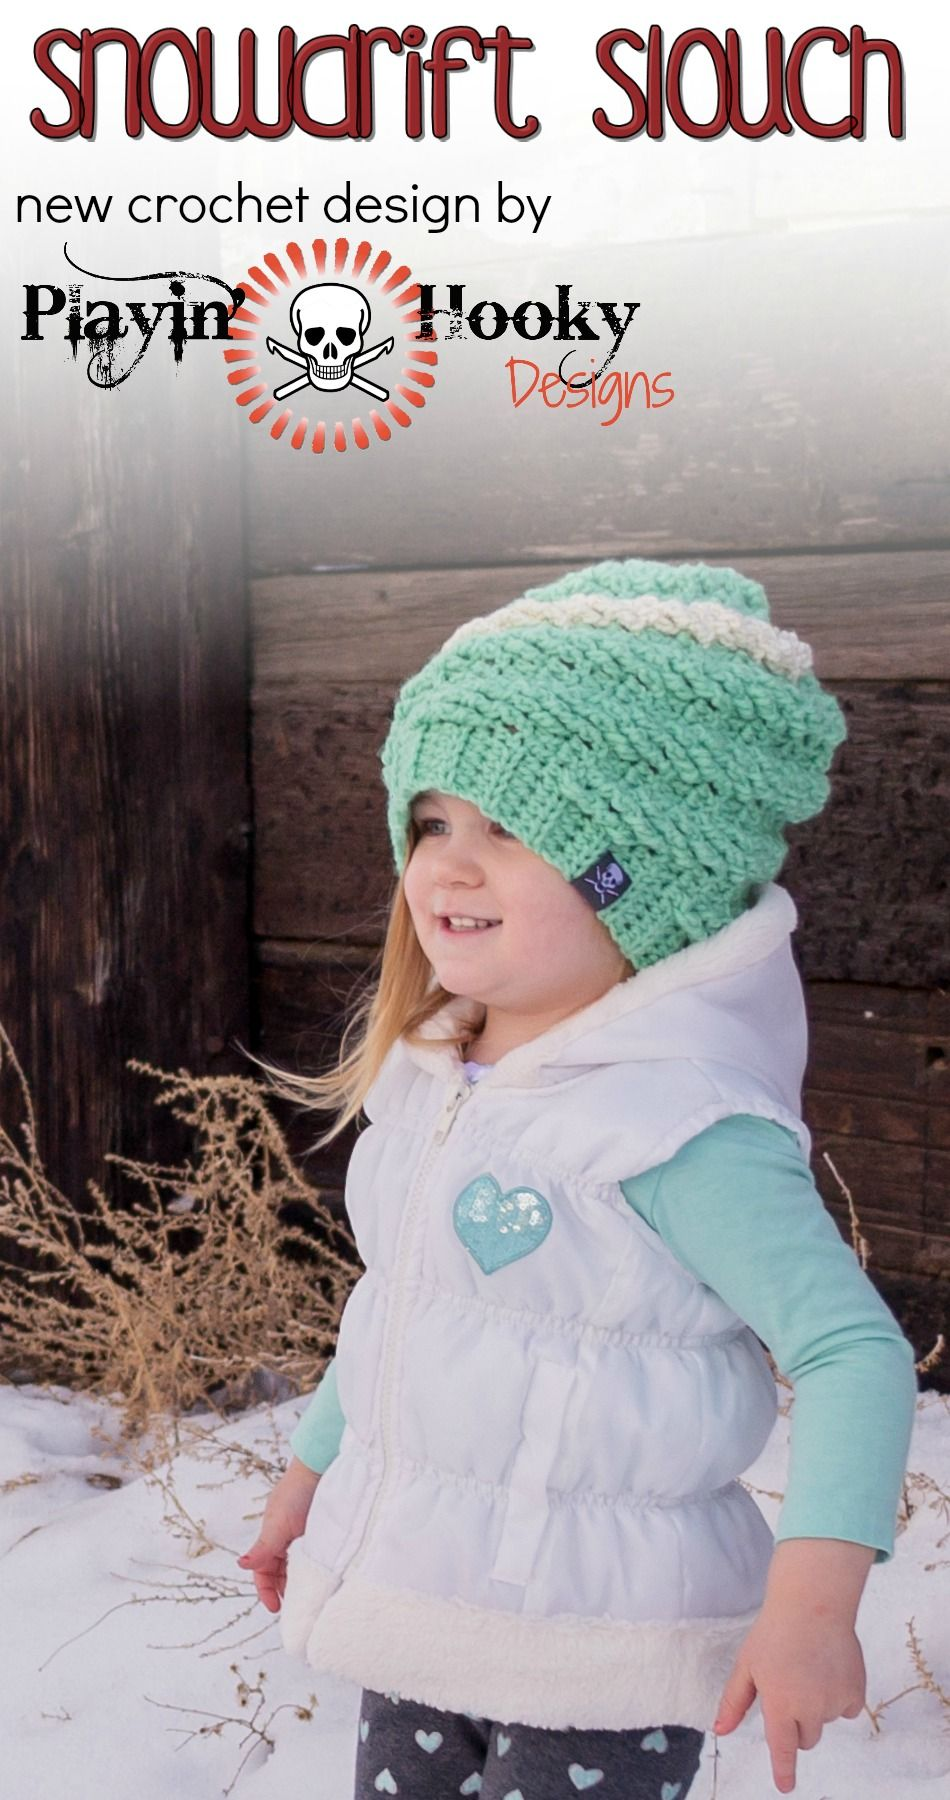 New #crochet pattern from Playin' Hooky Designs. The Snowdrift Slouch